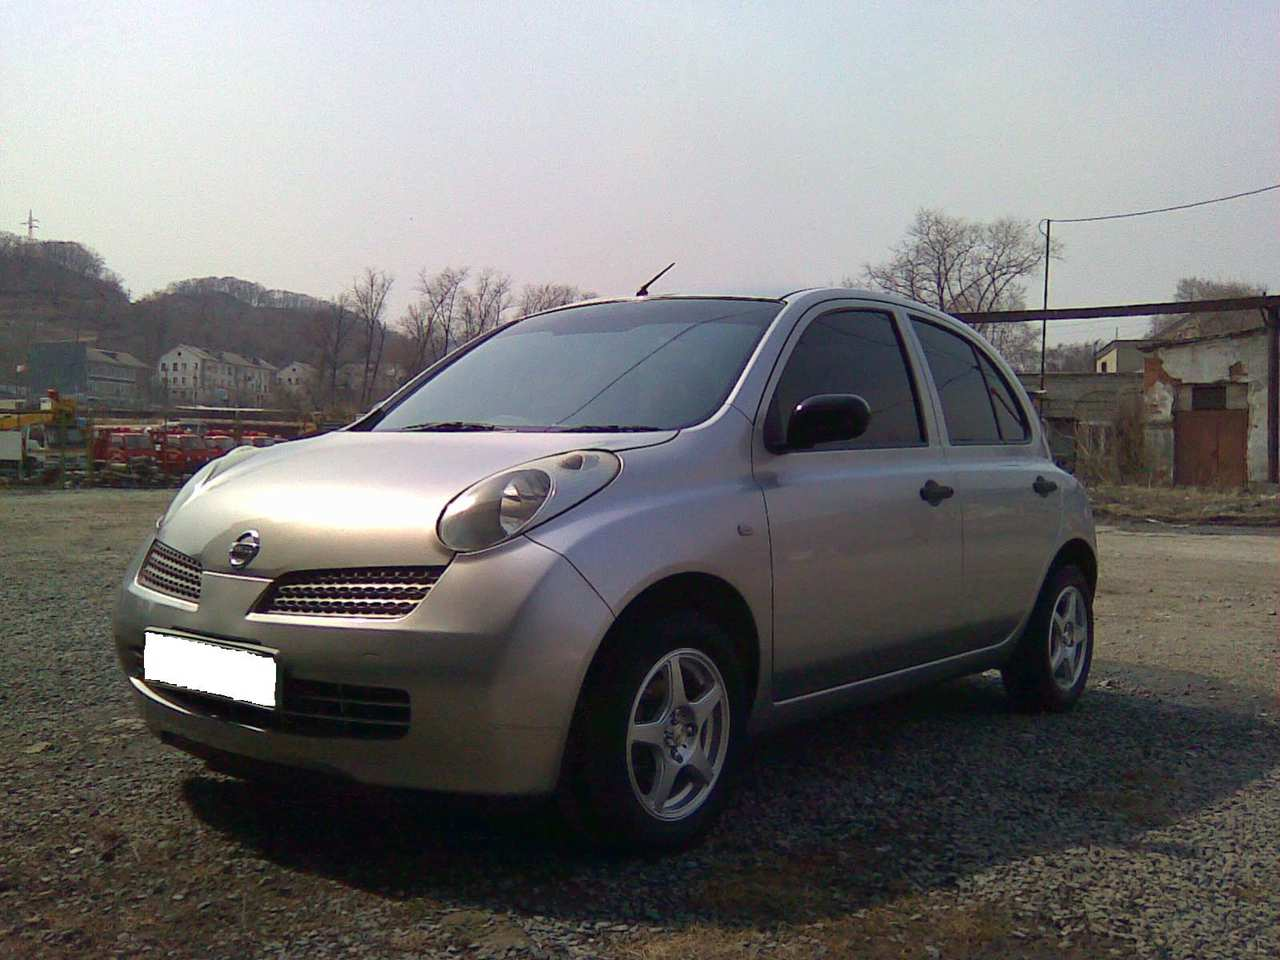 used 2002 nissan march photos 1000cc gasoline ff automatic for sale. Black Bedroom Furniture Sets. Home Design Ideas